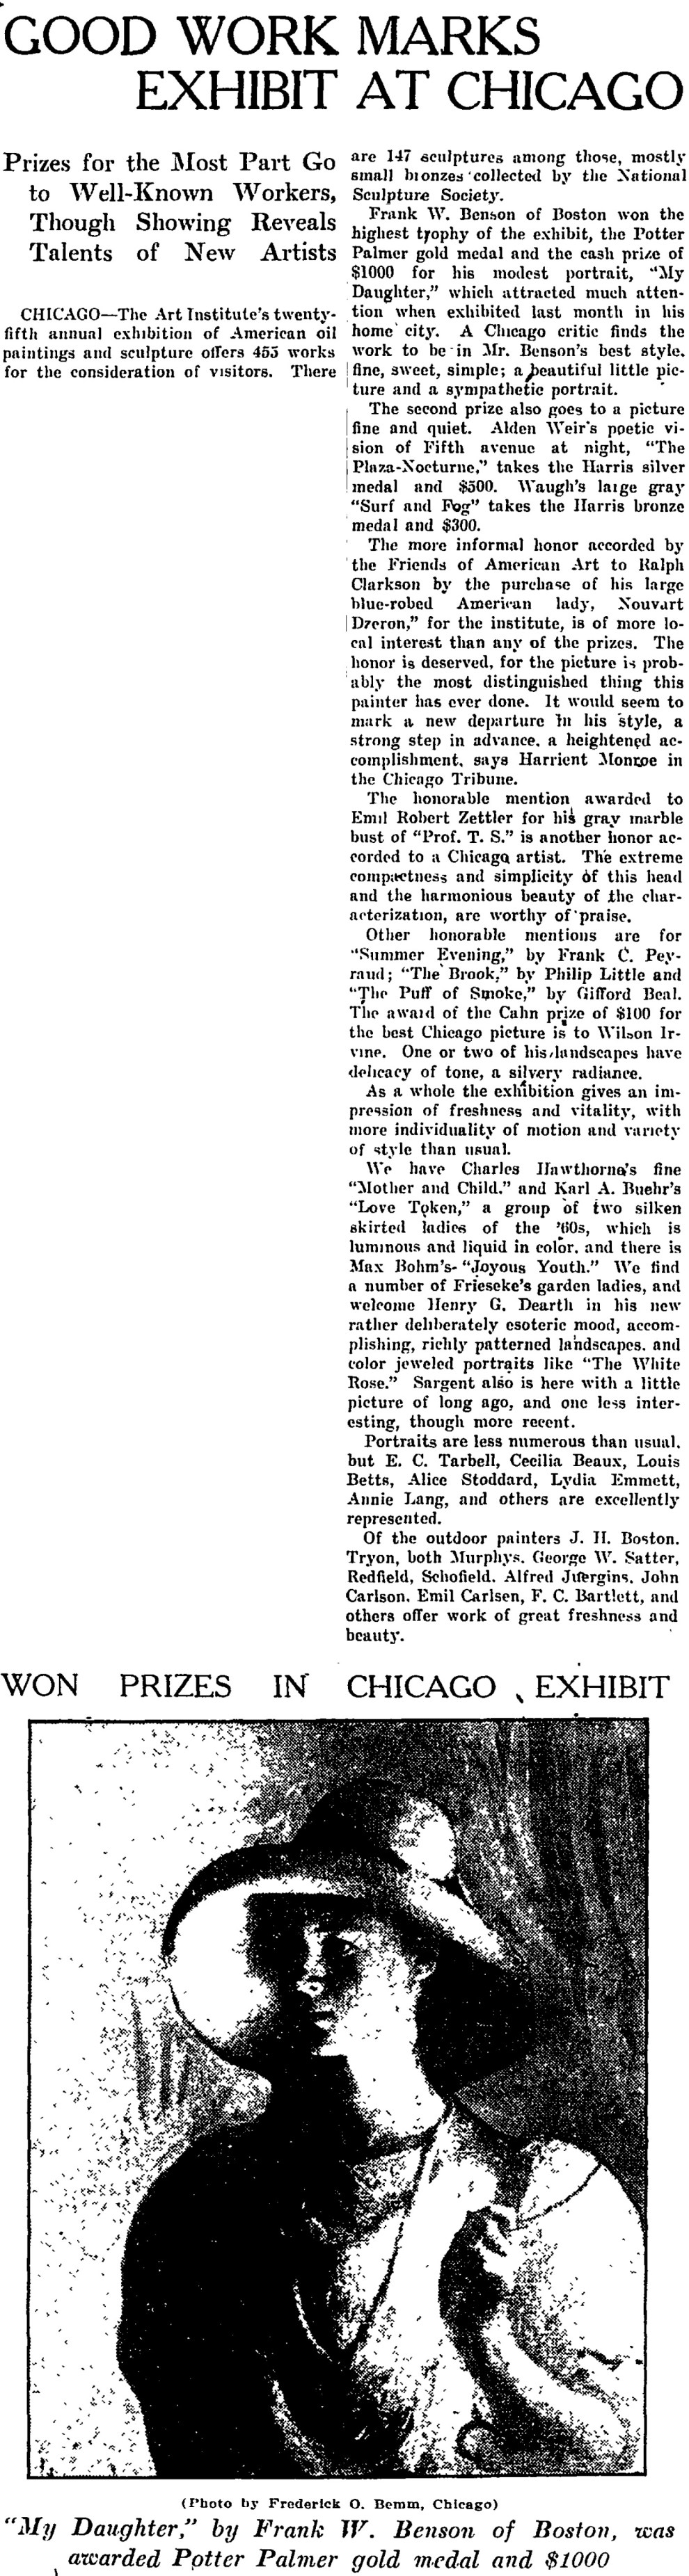 """The Christian Science Monitor, New York, NY, """"Good Work Marks Exhibit at Chicago"""", November 9, 1912, page 7, not illustrated"""